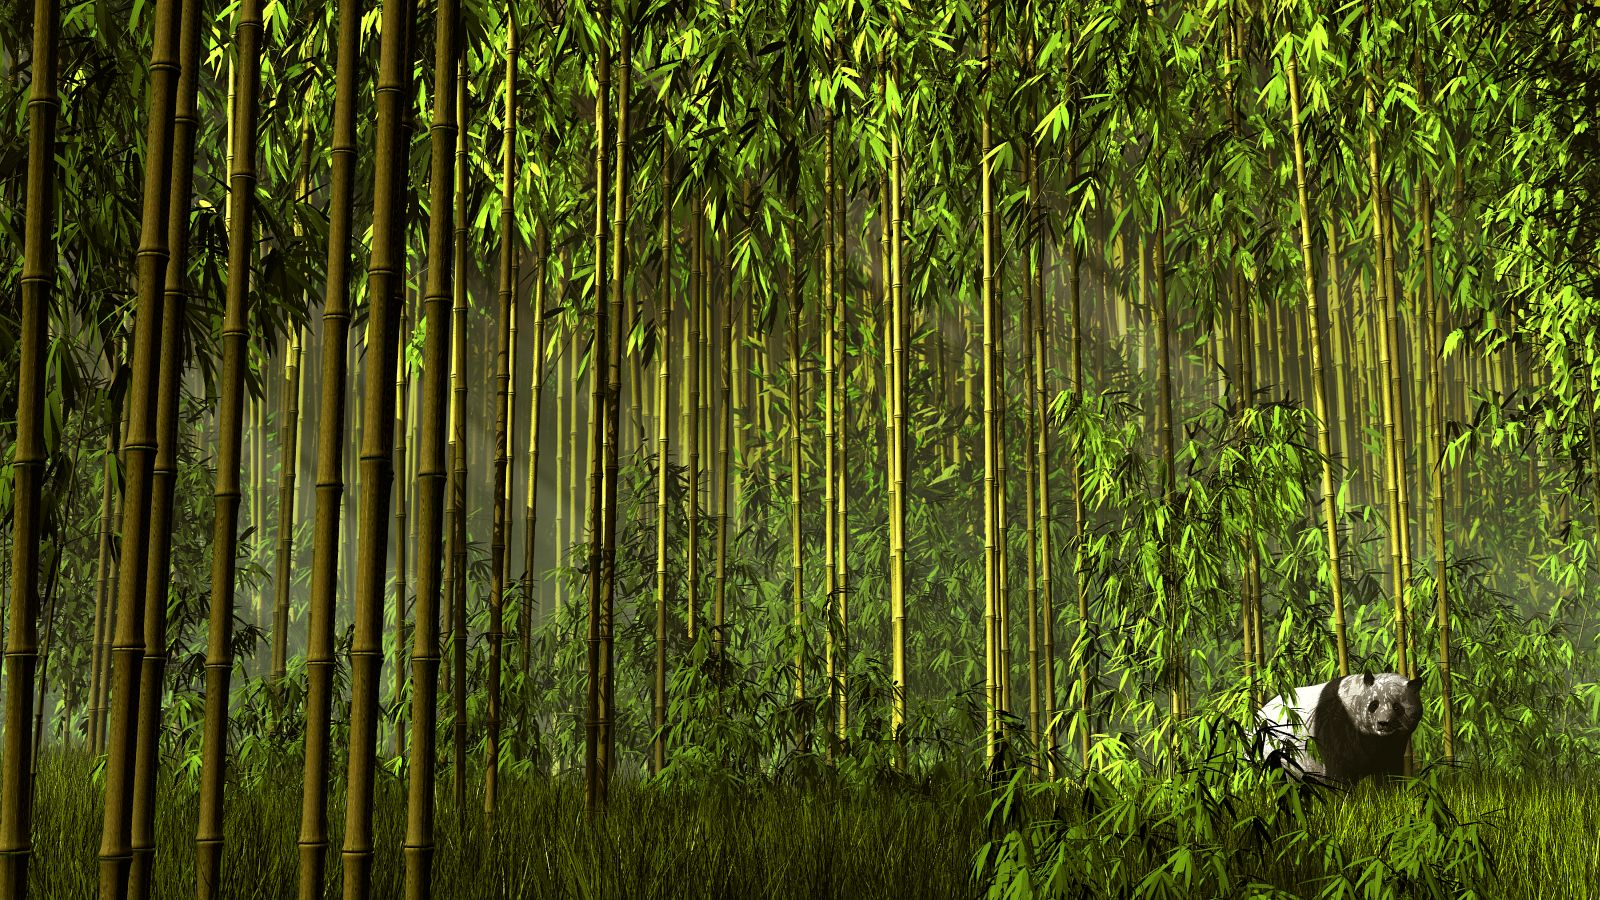 Bamboo Forest by x